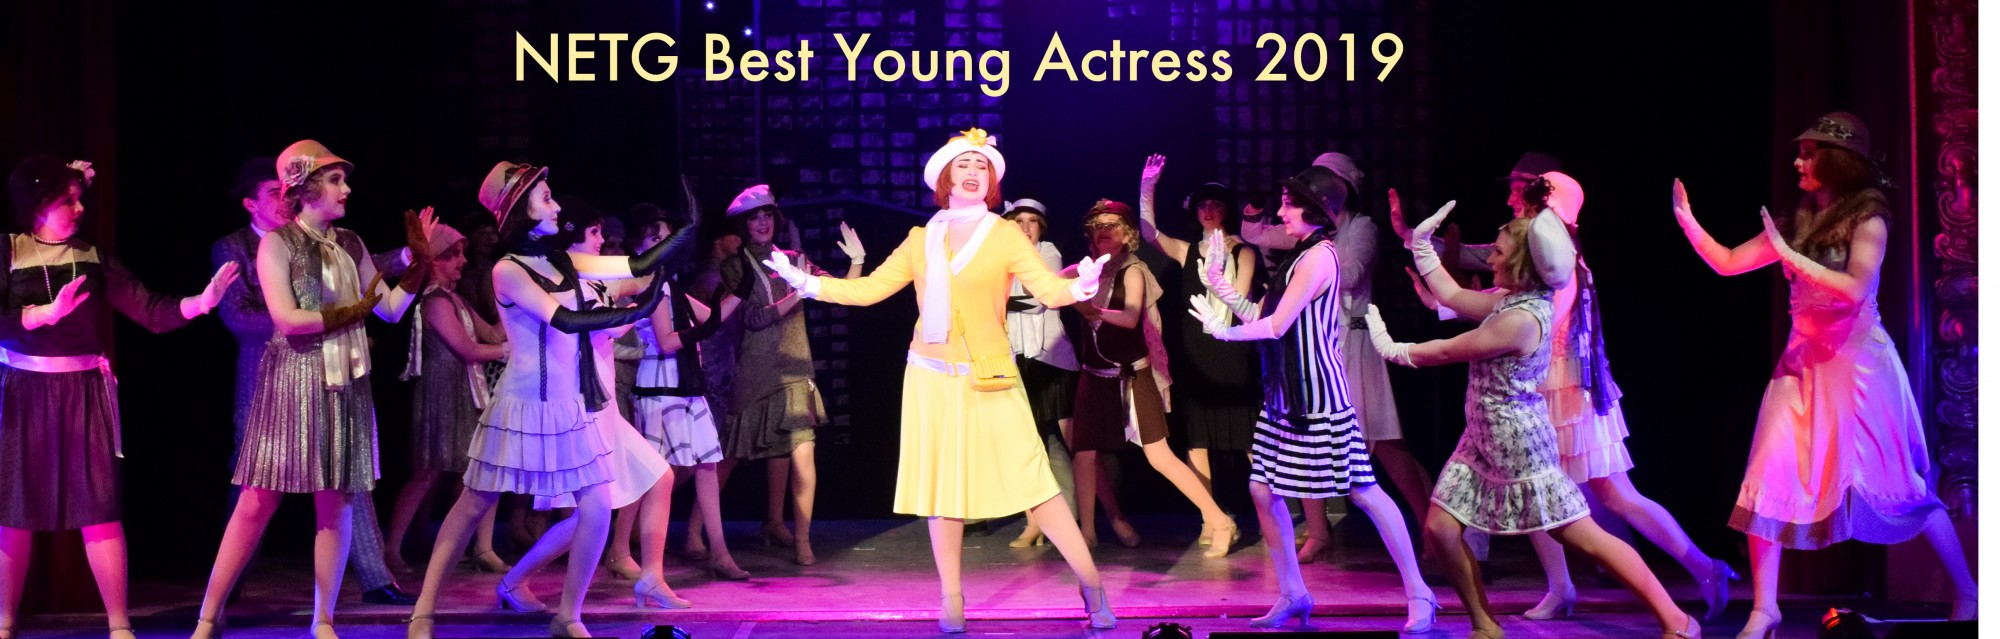 NETG Best Young Actress Yaz